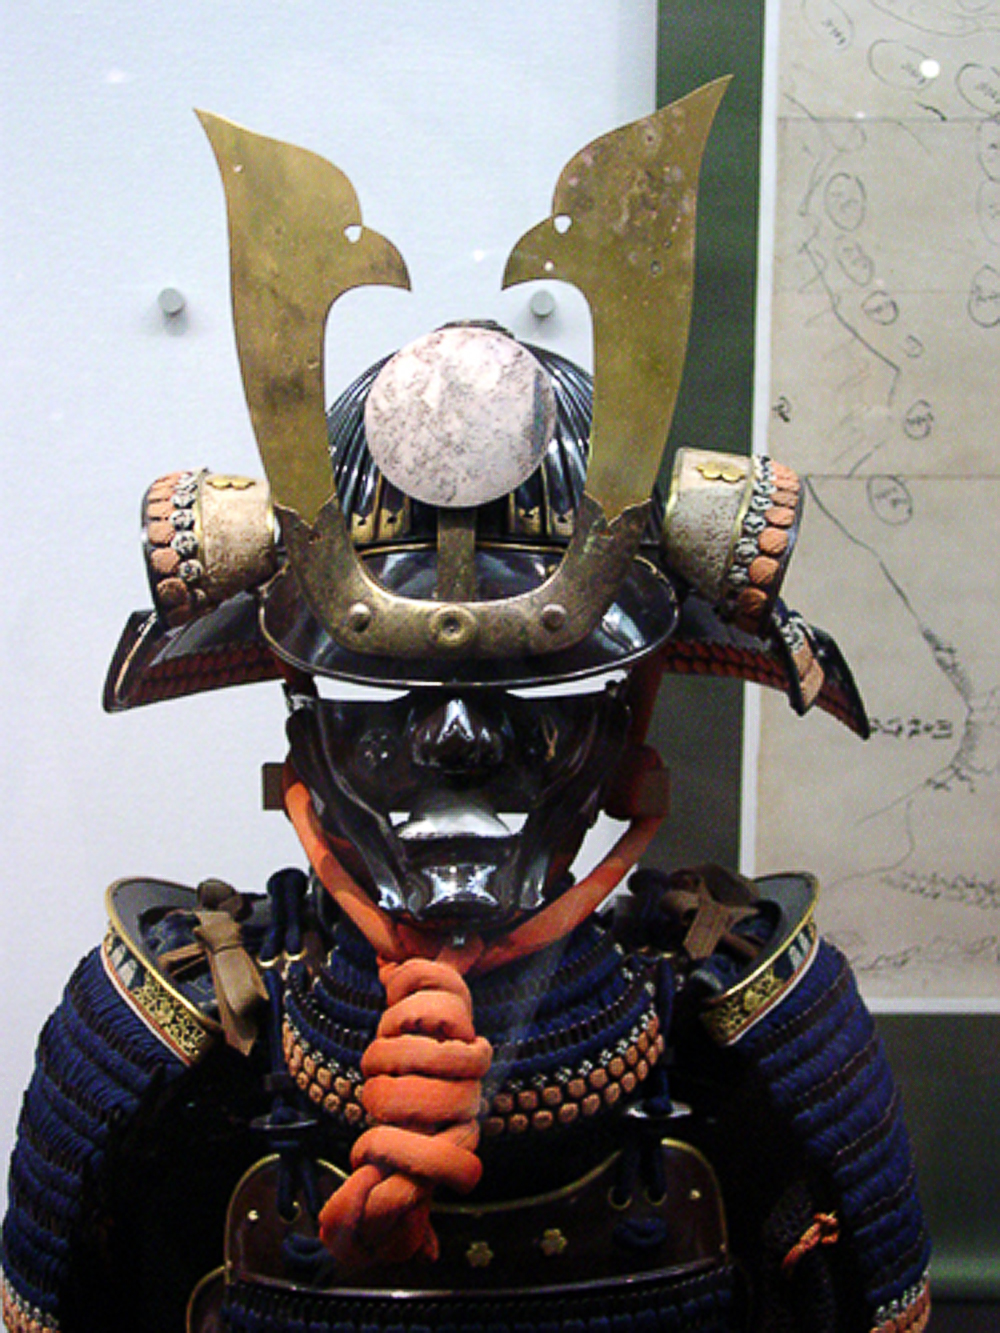 ファイル:Samurai uniform.jpg